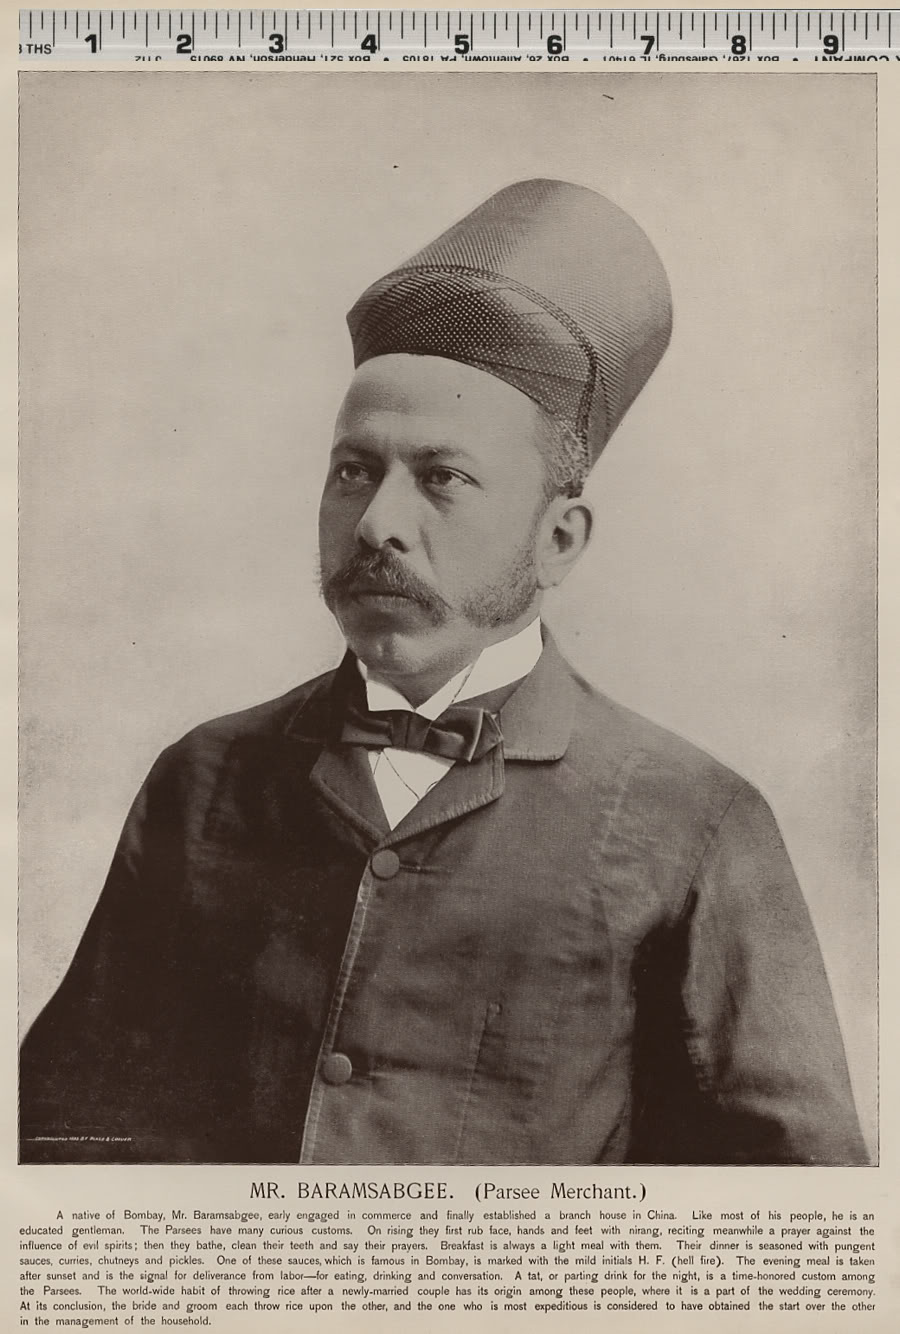 Mr. Baramsabgee, Parsee Merchant - 1893 Portrait